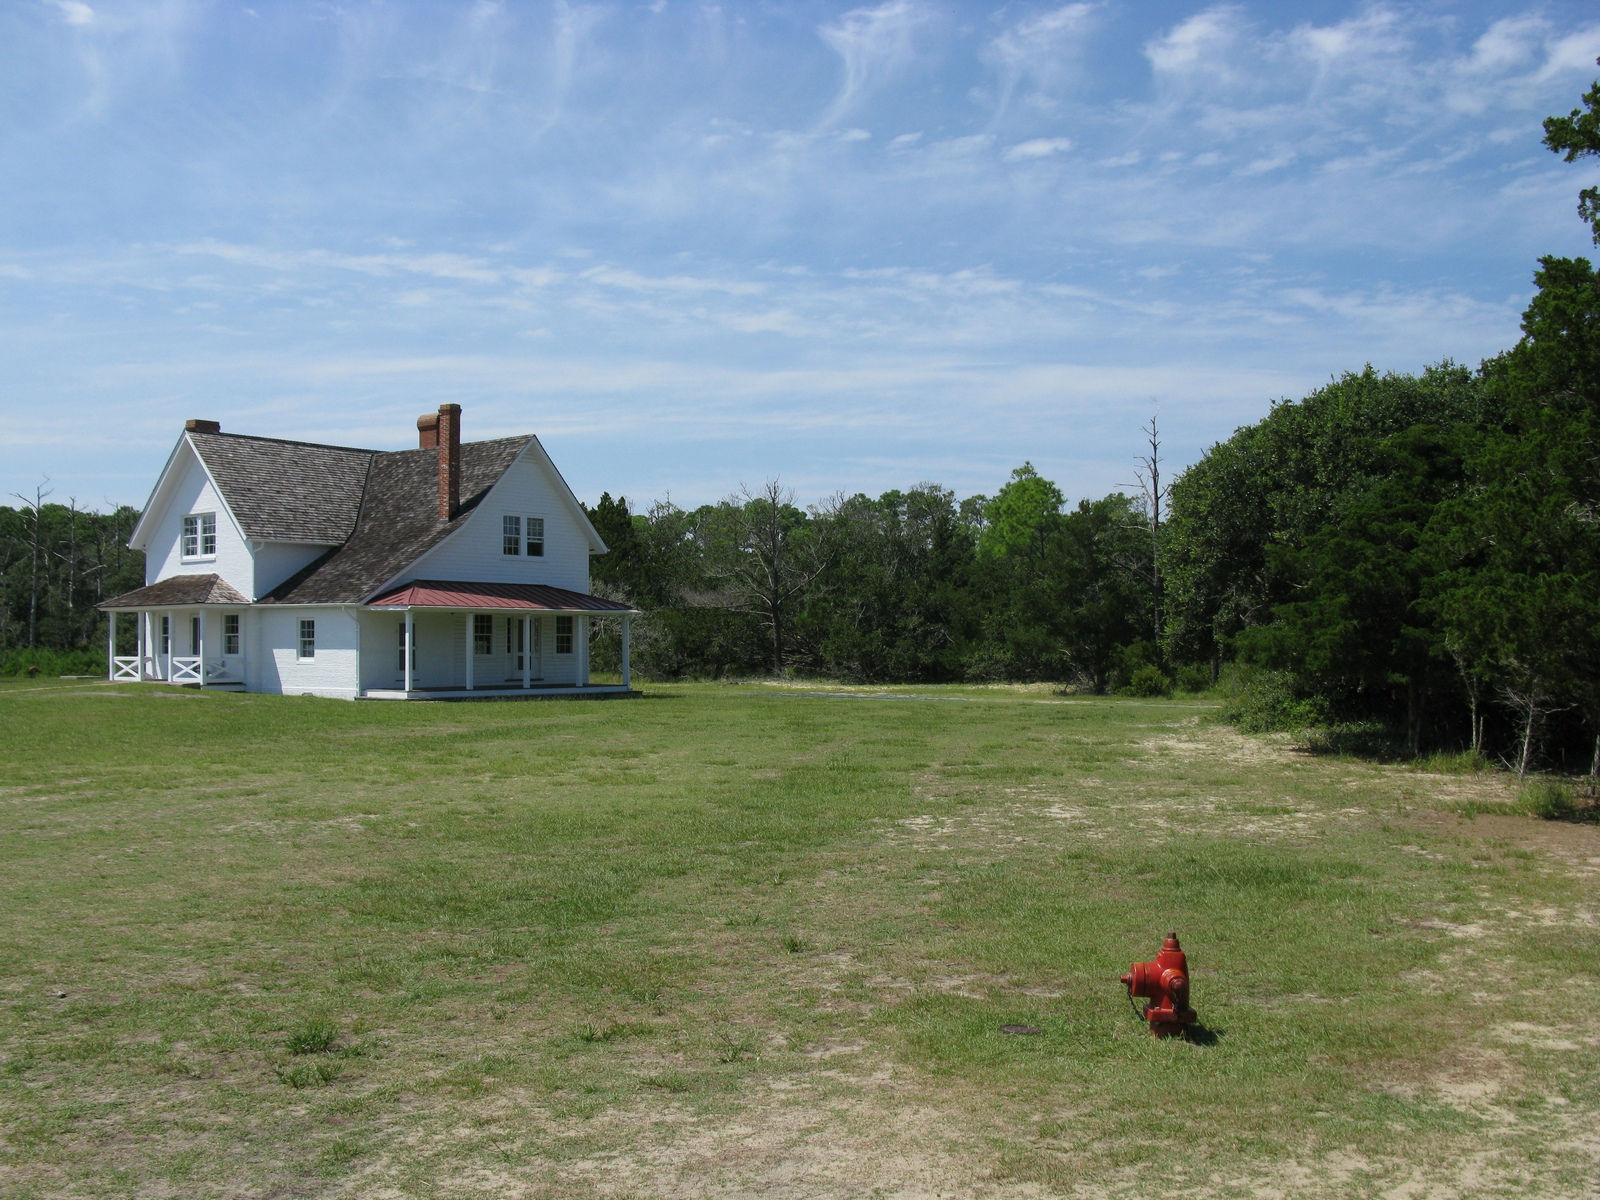 hatteras_light_keepers_house.jpg